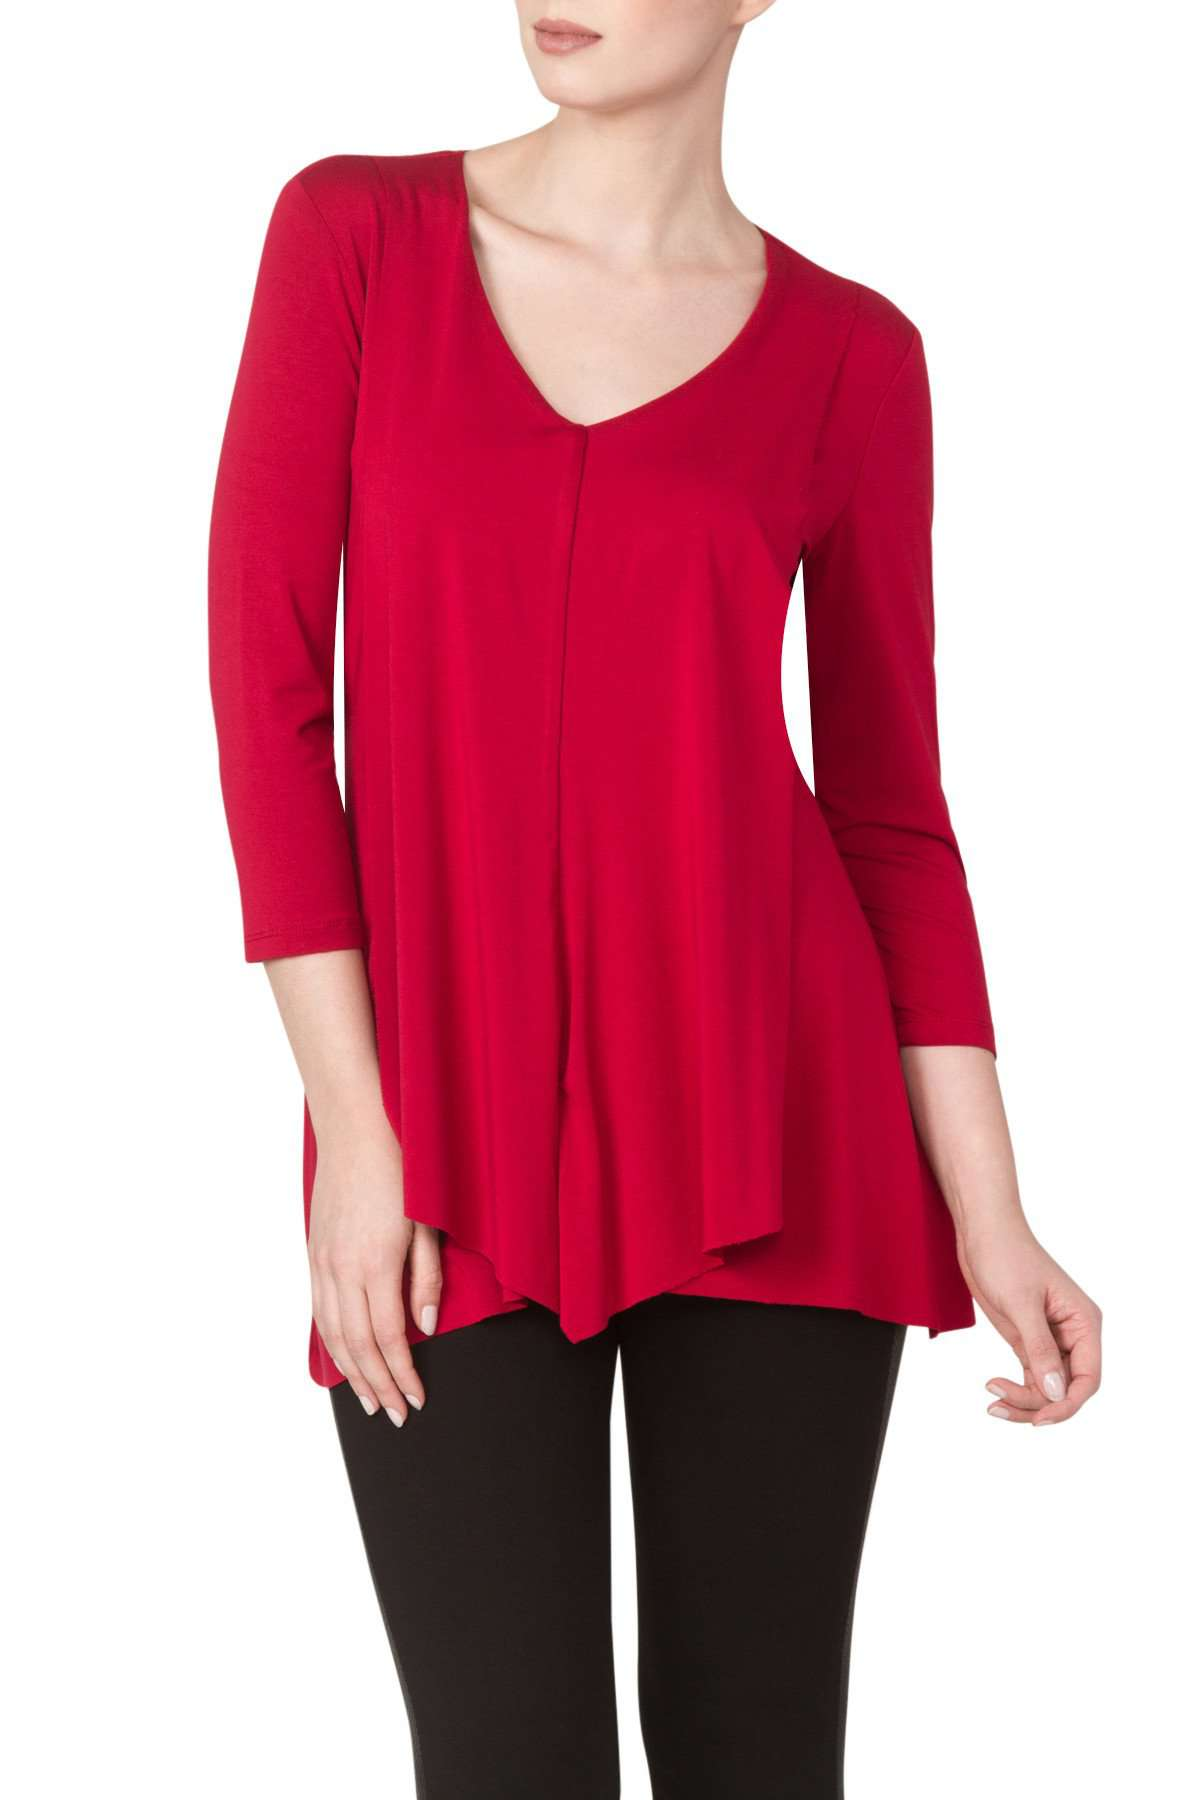 Women's Red Flattering Flyaway Tunic - Made in Canada - Yvonne Marie - Yvonne Marie